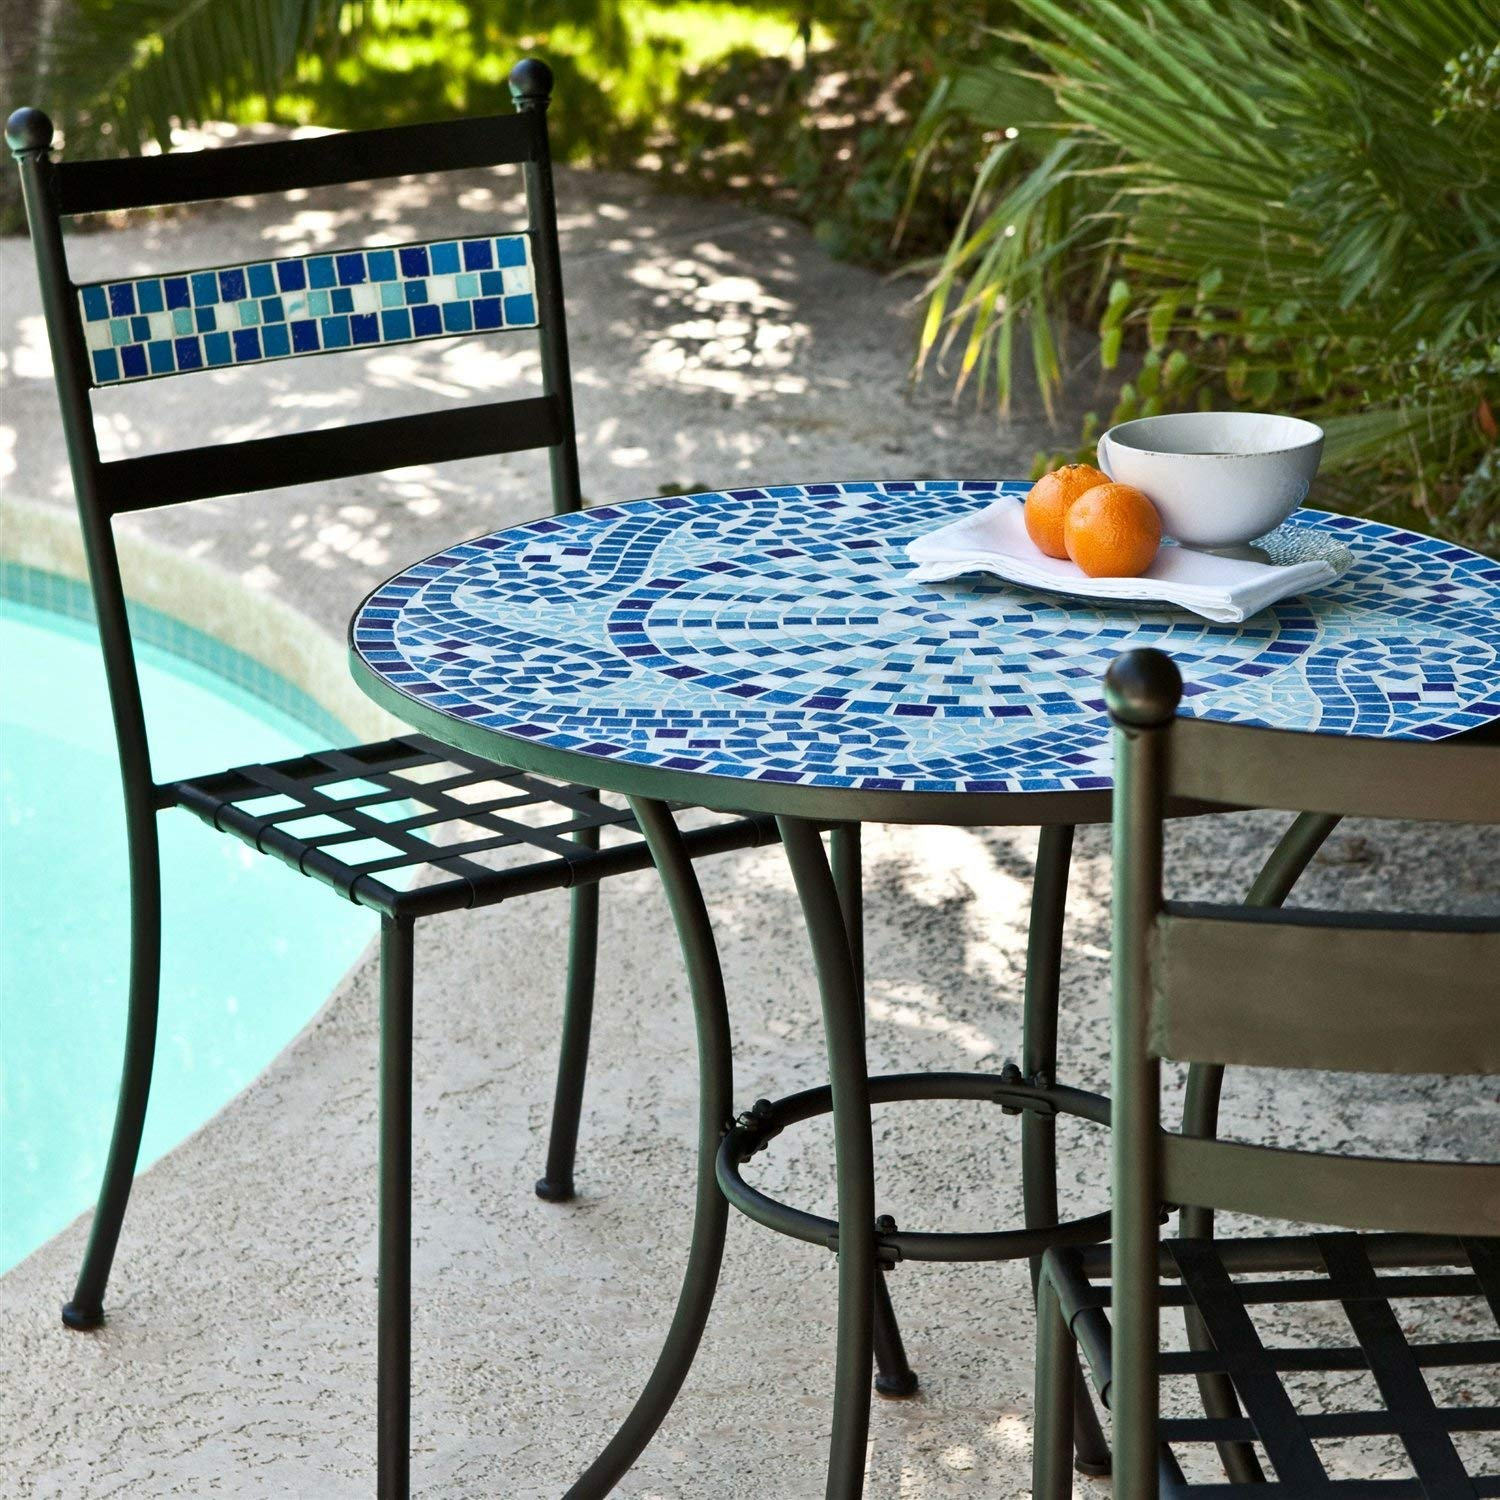 outdoor mosaic art find line zaltana accent table get quotations starsun depot piece aqua blue tiles patio furniture bistro set black gloss sideboard white wingback chair teal